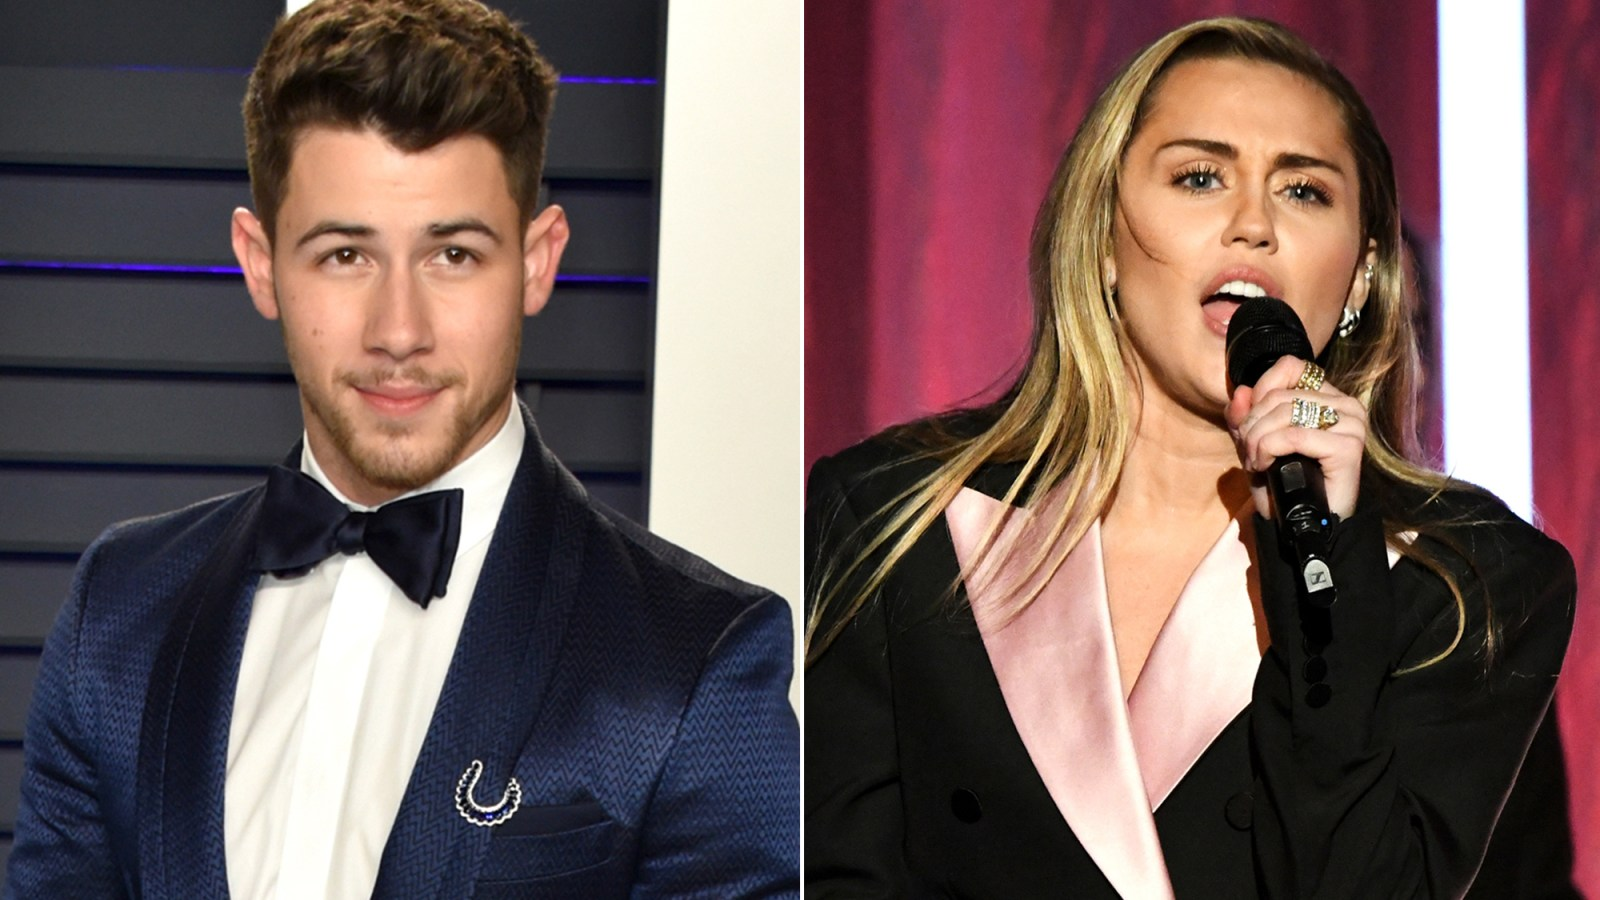 Miley cyrus and nick jonas sex anal porn